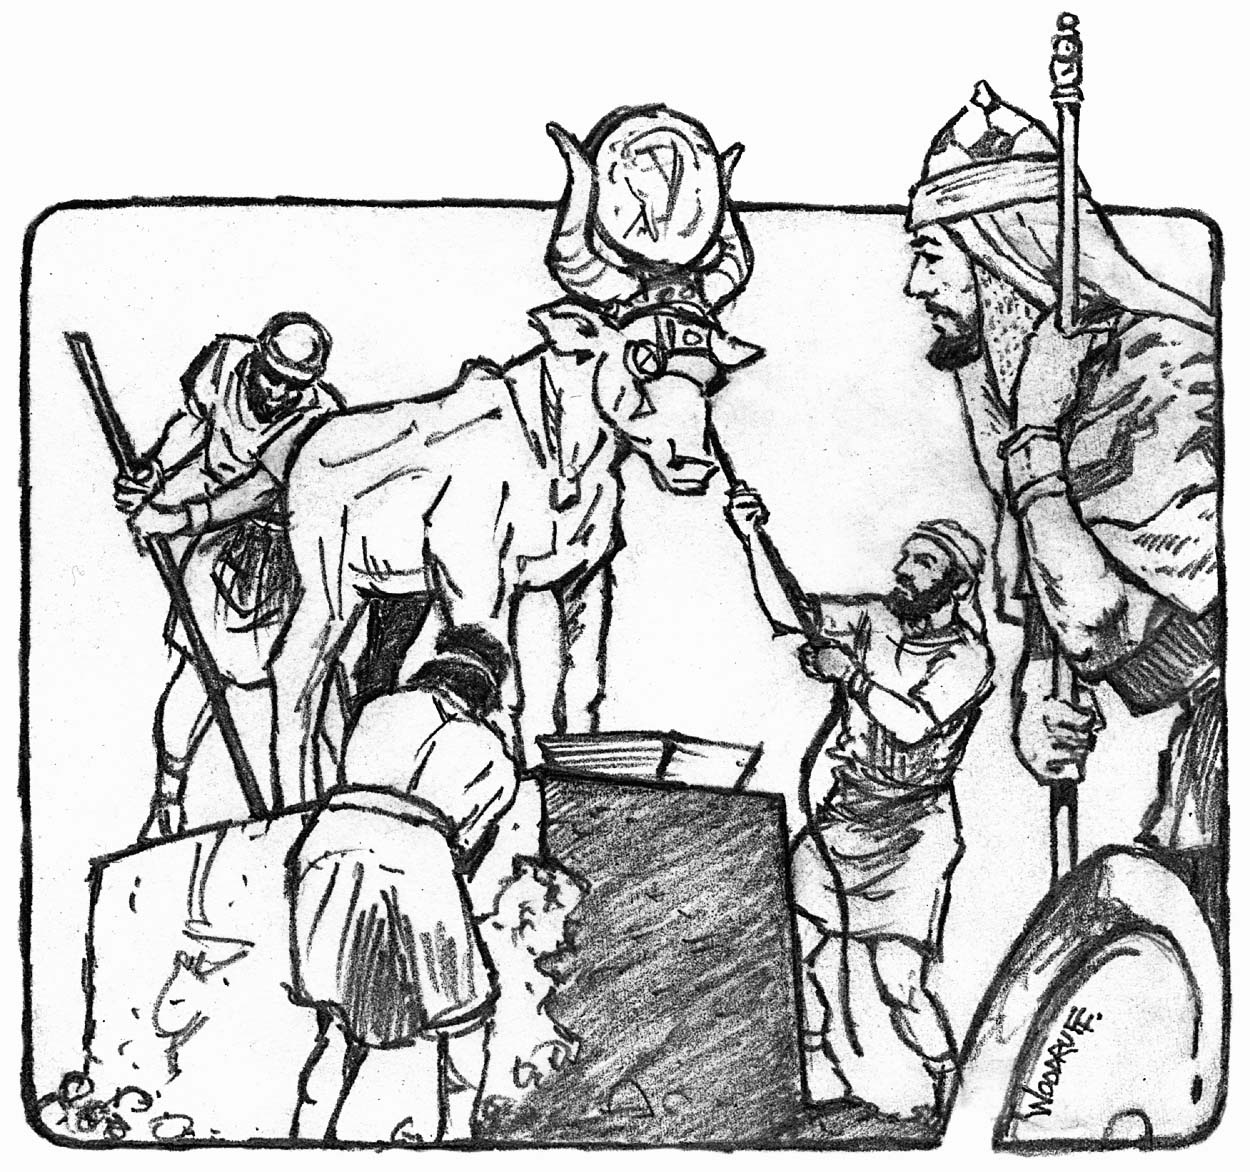 Bible lesson josiah finds the law of the lord - Profiles Of Faith Josiah A Kingdom Returns To God United Church Of God